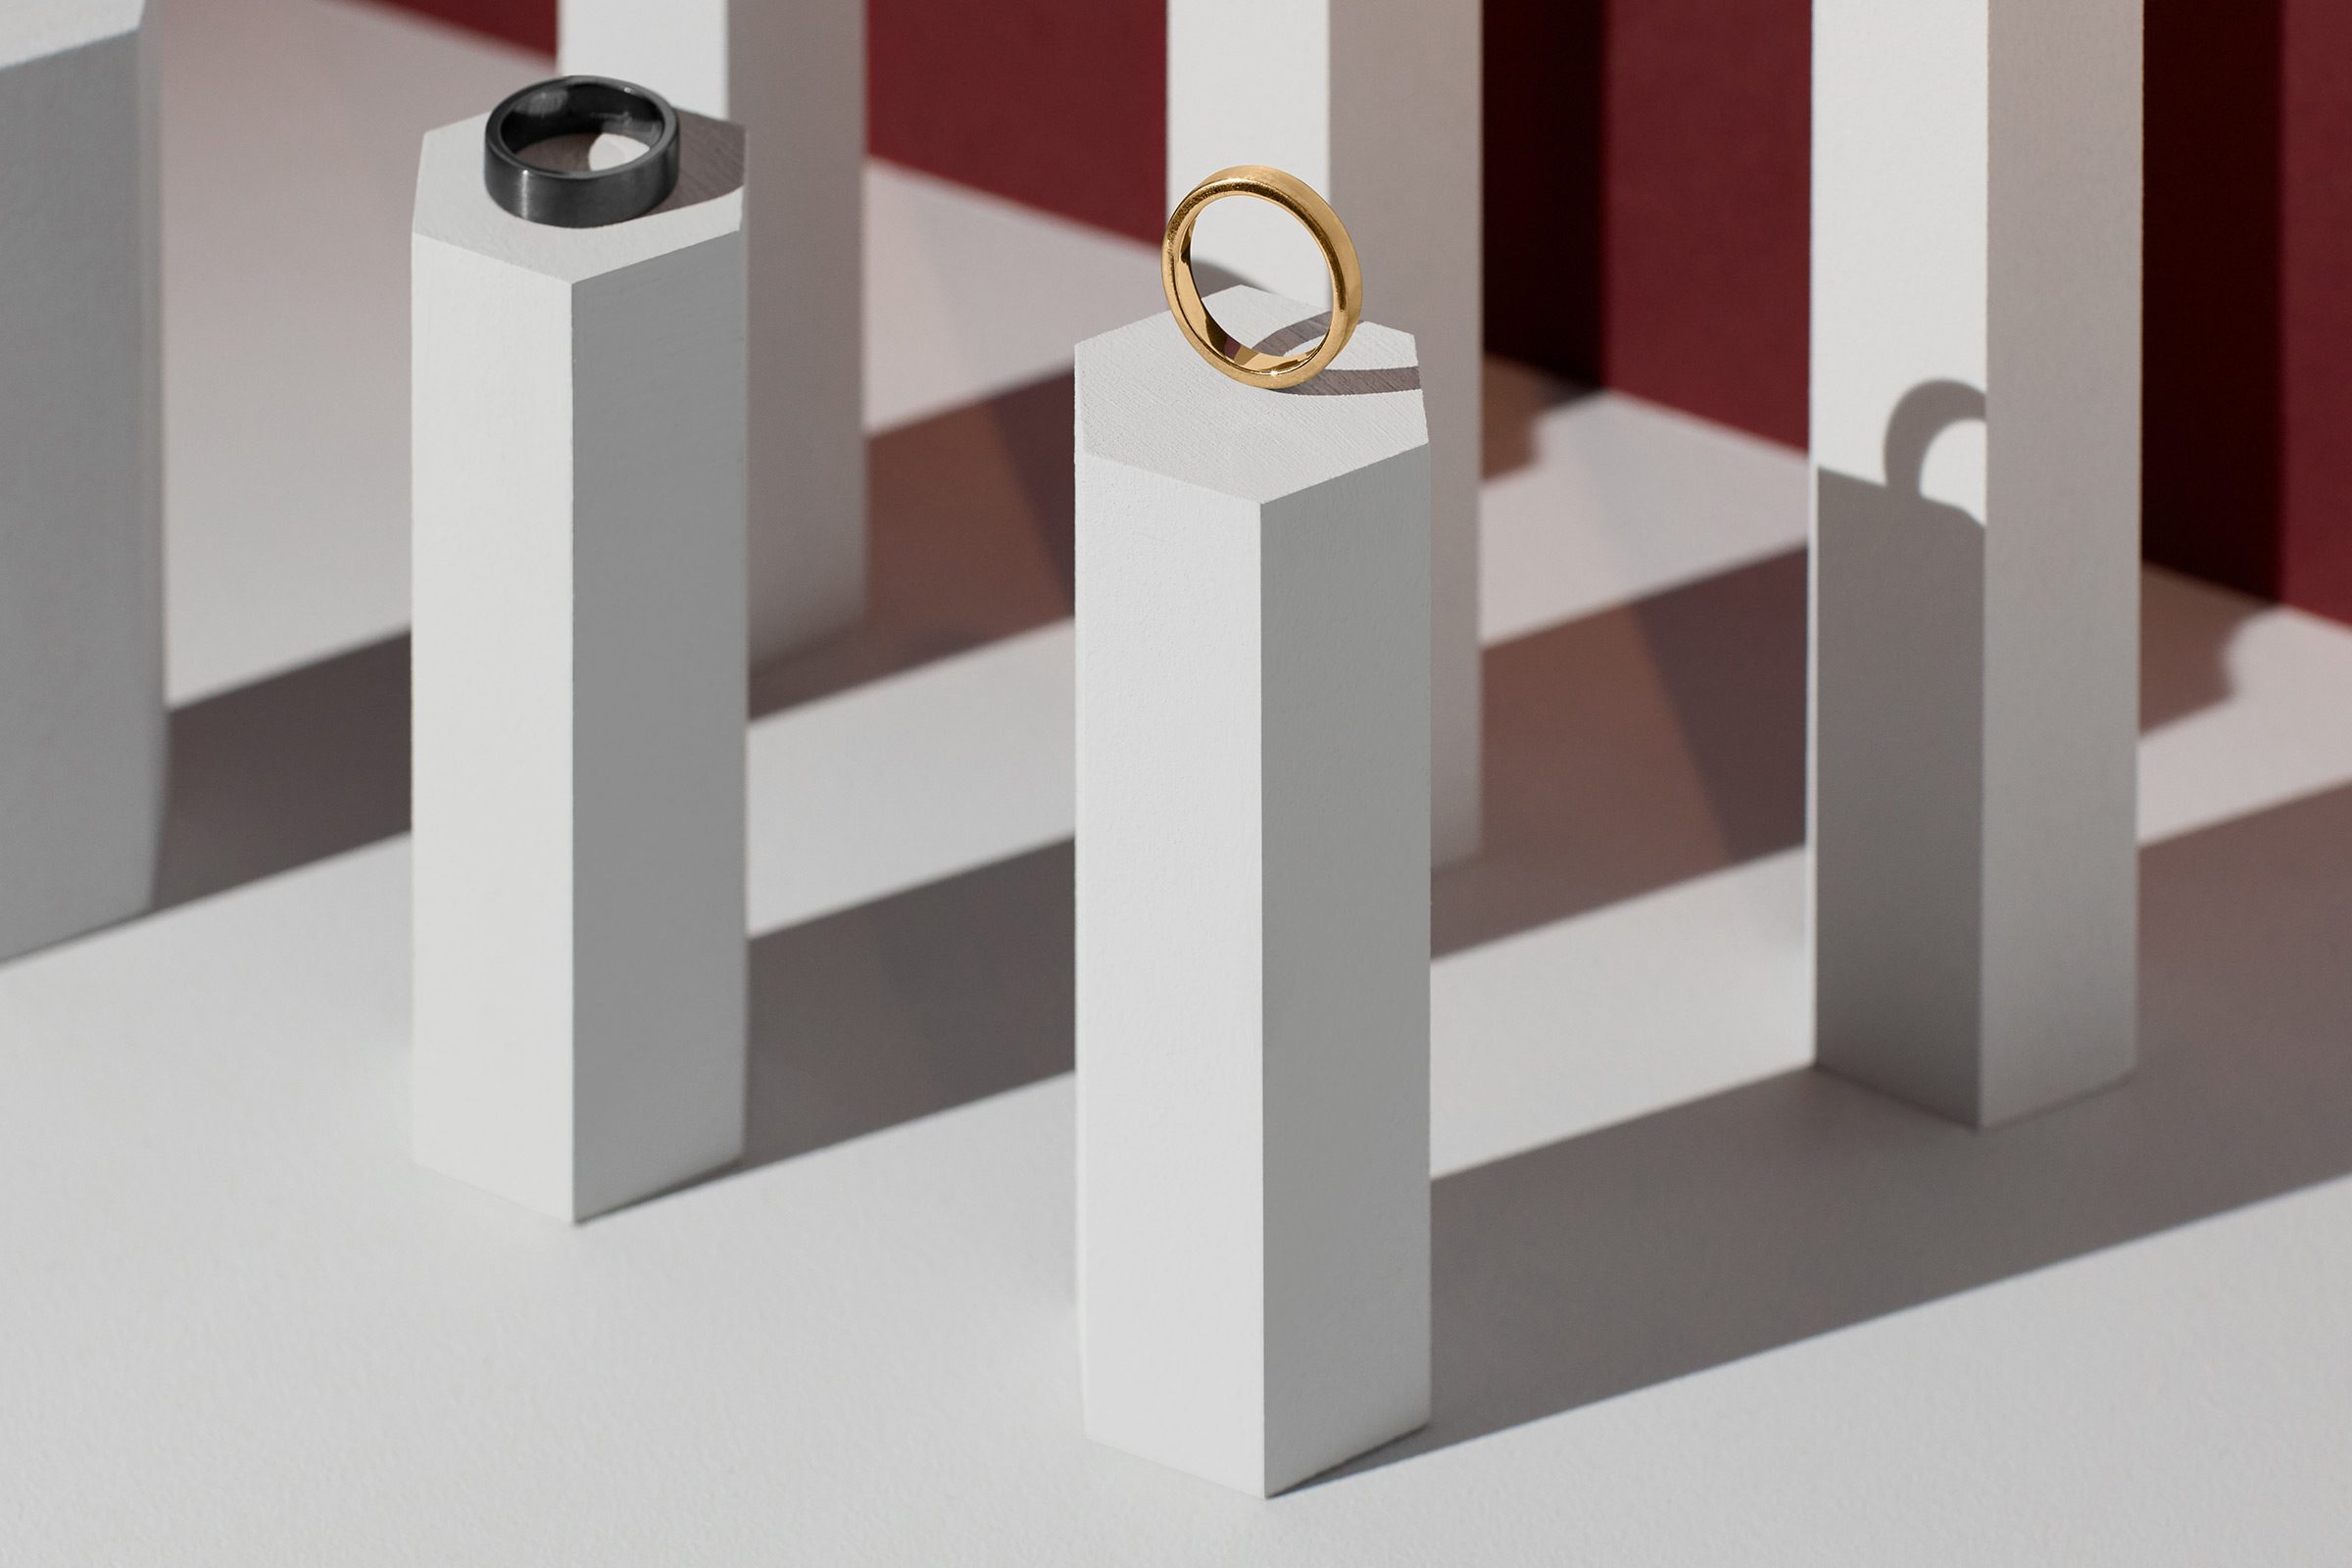 ALEX ORSO RINGS